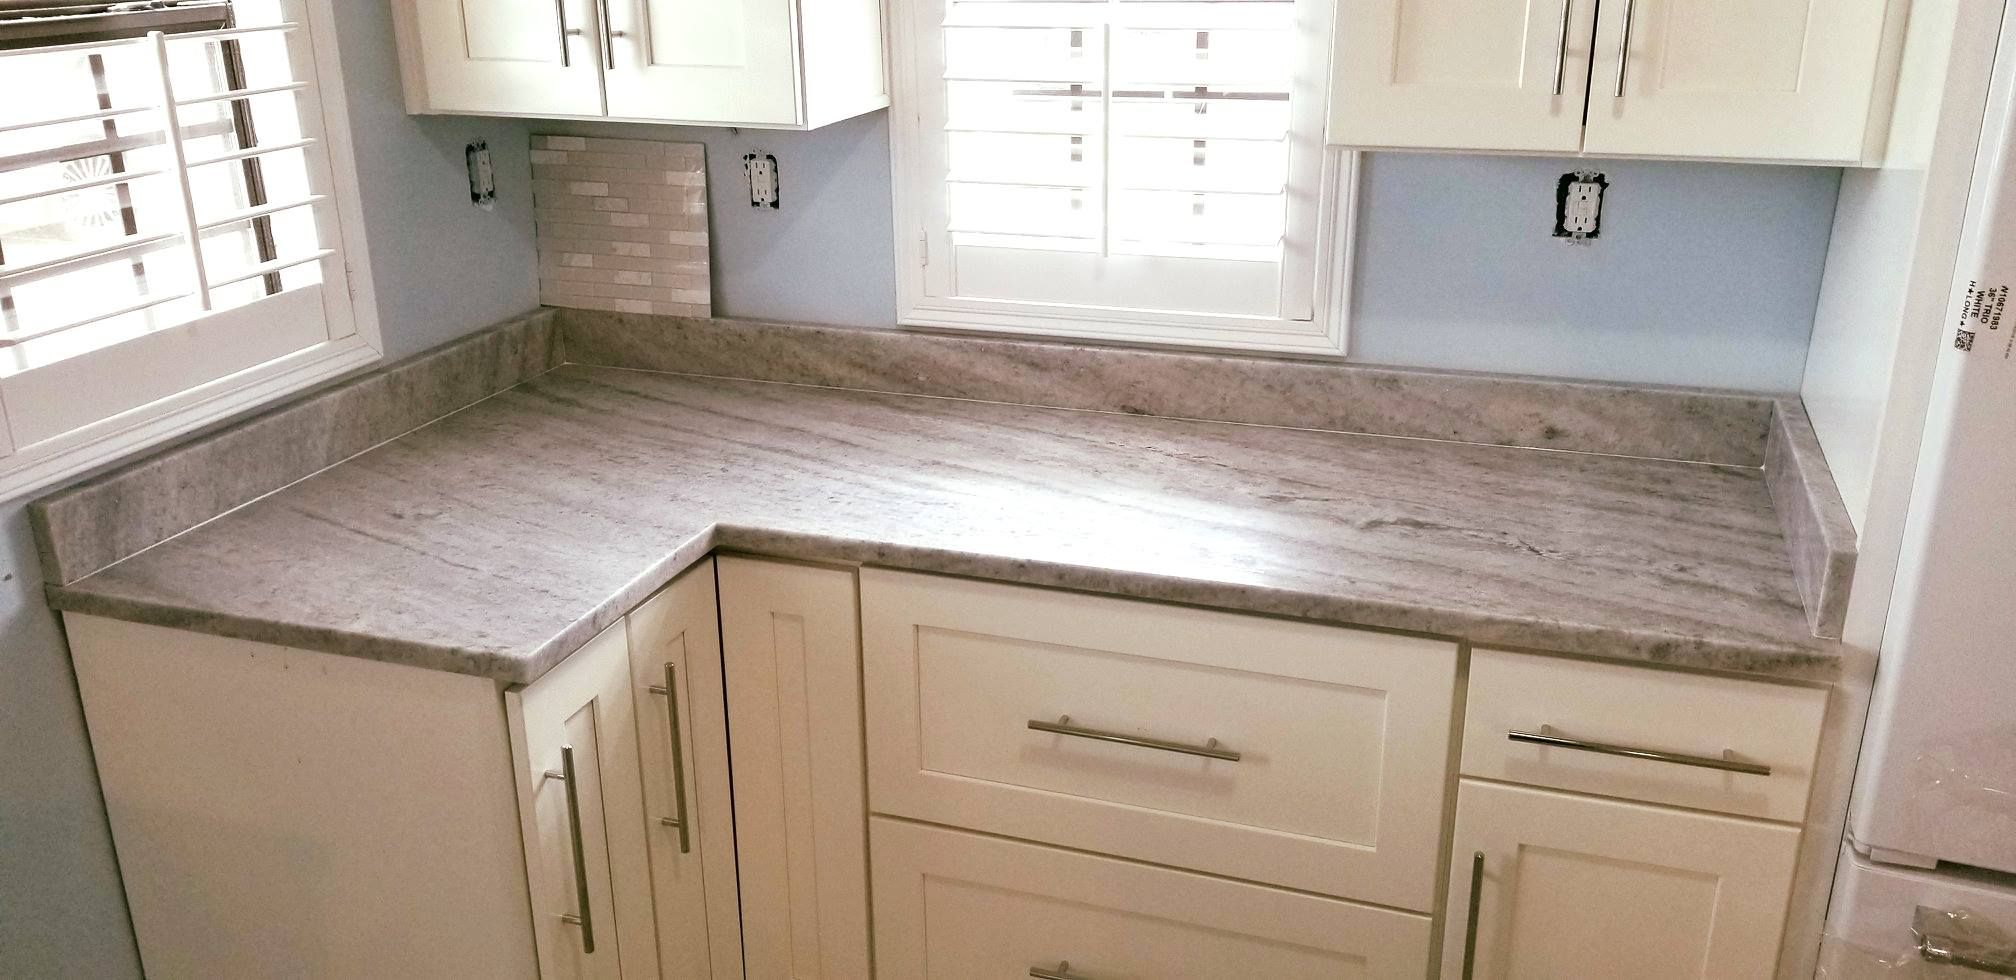 Amazing Custom Made Kitchen Bathroom Countertop Made By Using Glacier White Light Color Granite Whi Natural Stone Countertops Countertops Kitchens Bathrooms